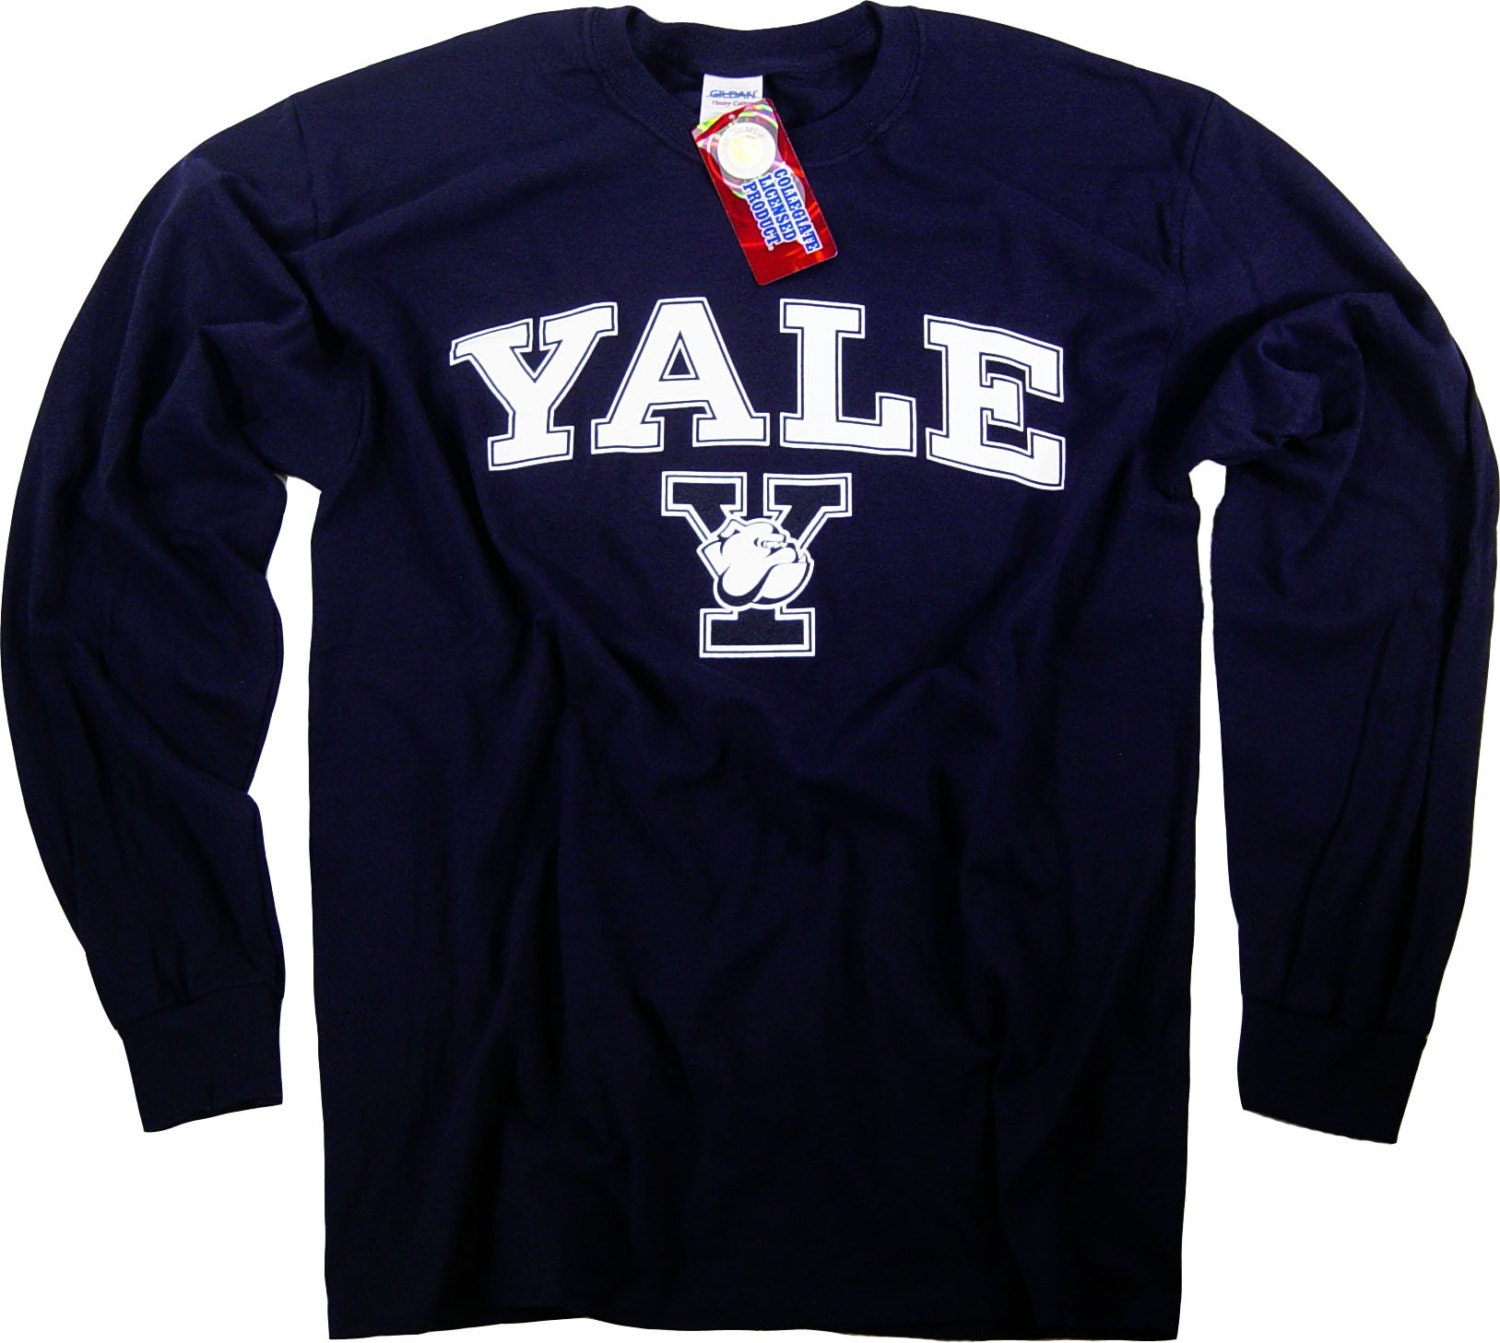 Yale shirt t shirt bulldogs college university apparel for University t shirts with your name